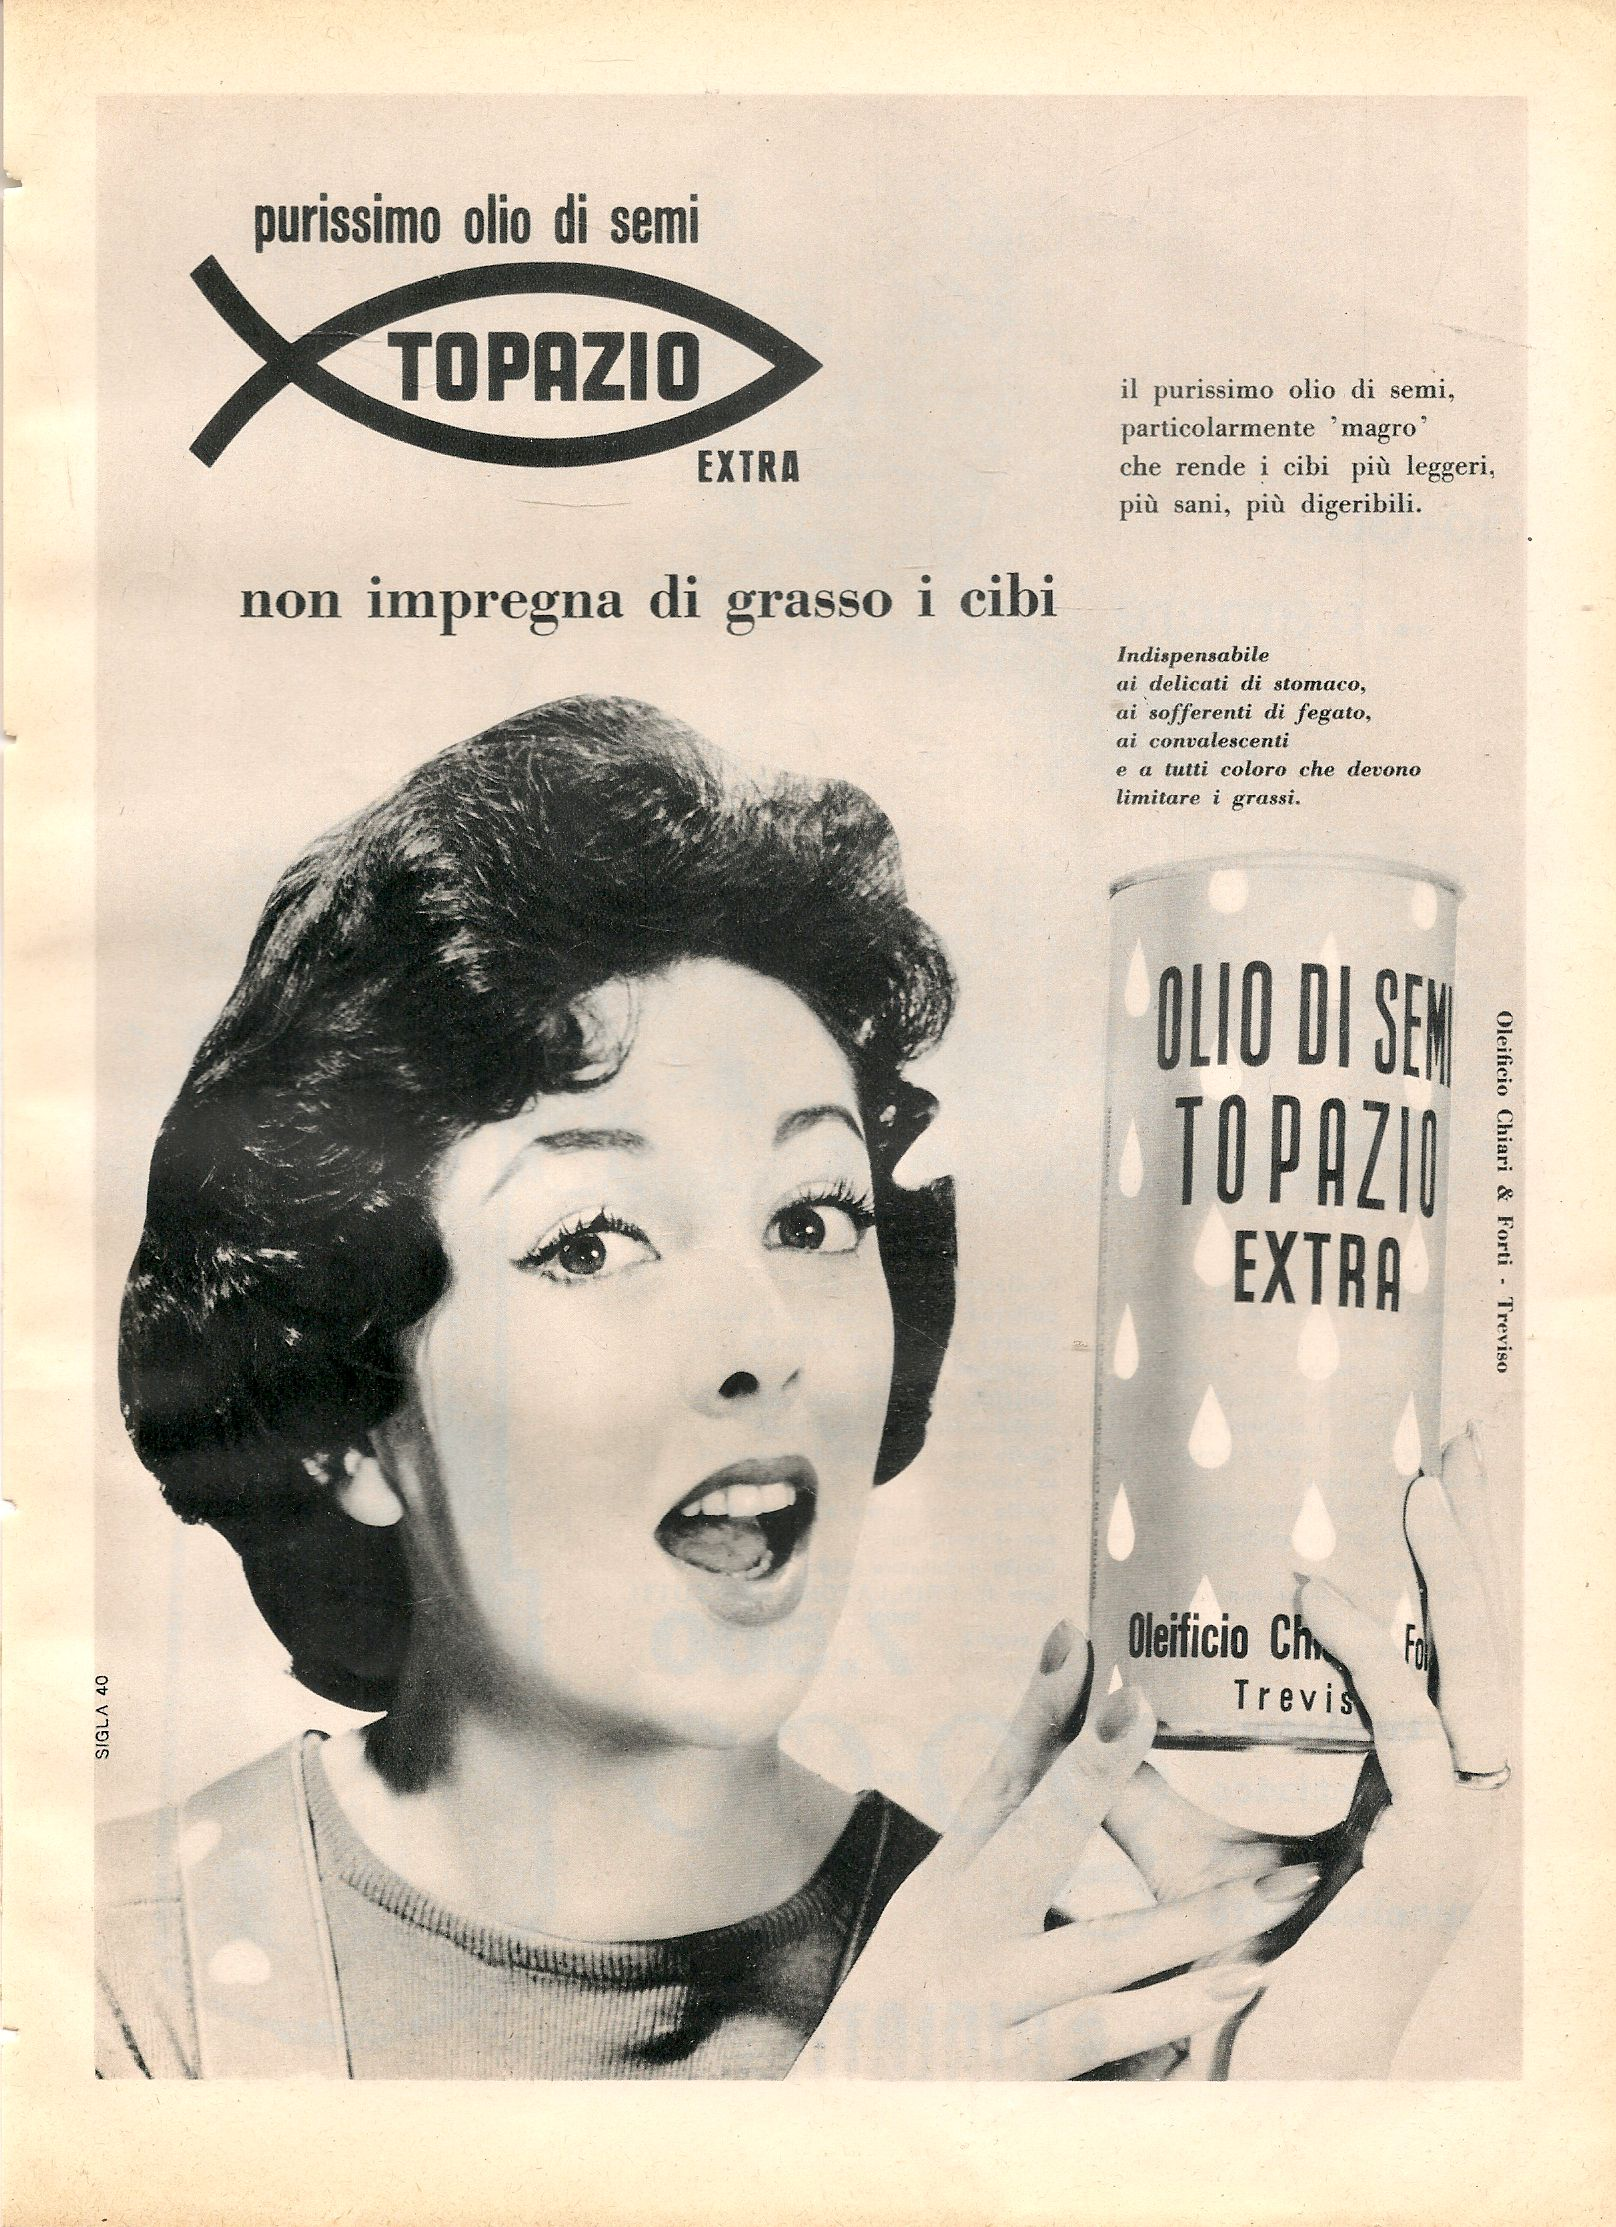 PURISSIMO OLIO DI SEMI TOPAZIO - ADVERTISING